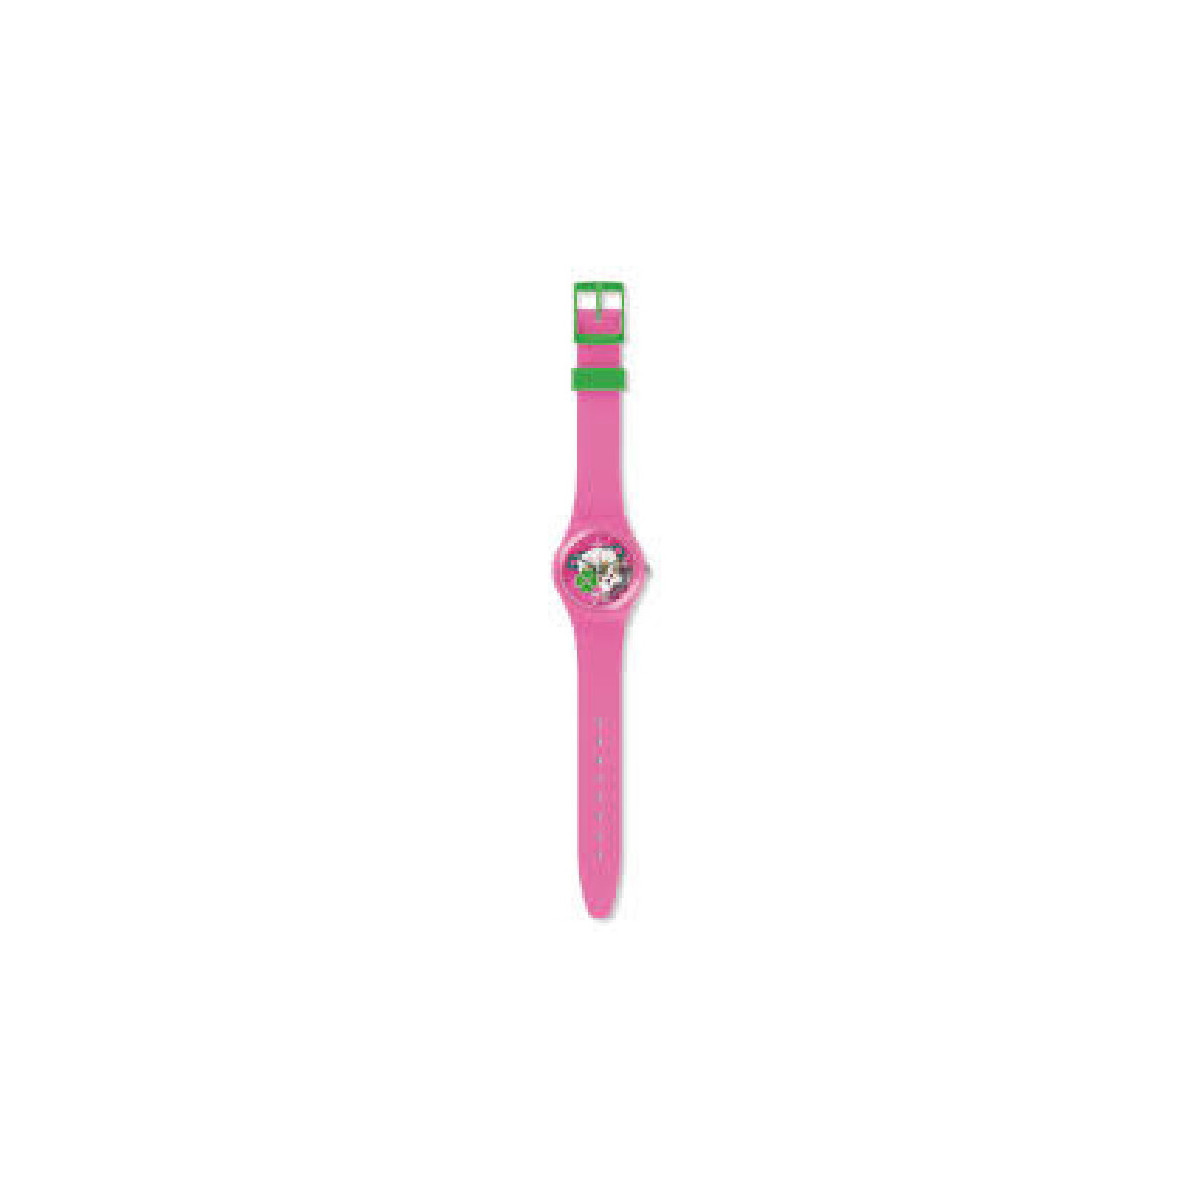 Swatch_GP147_Powerfull_outlet_50%